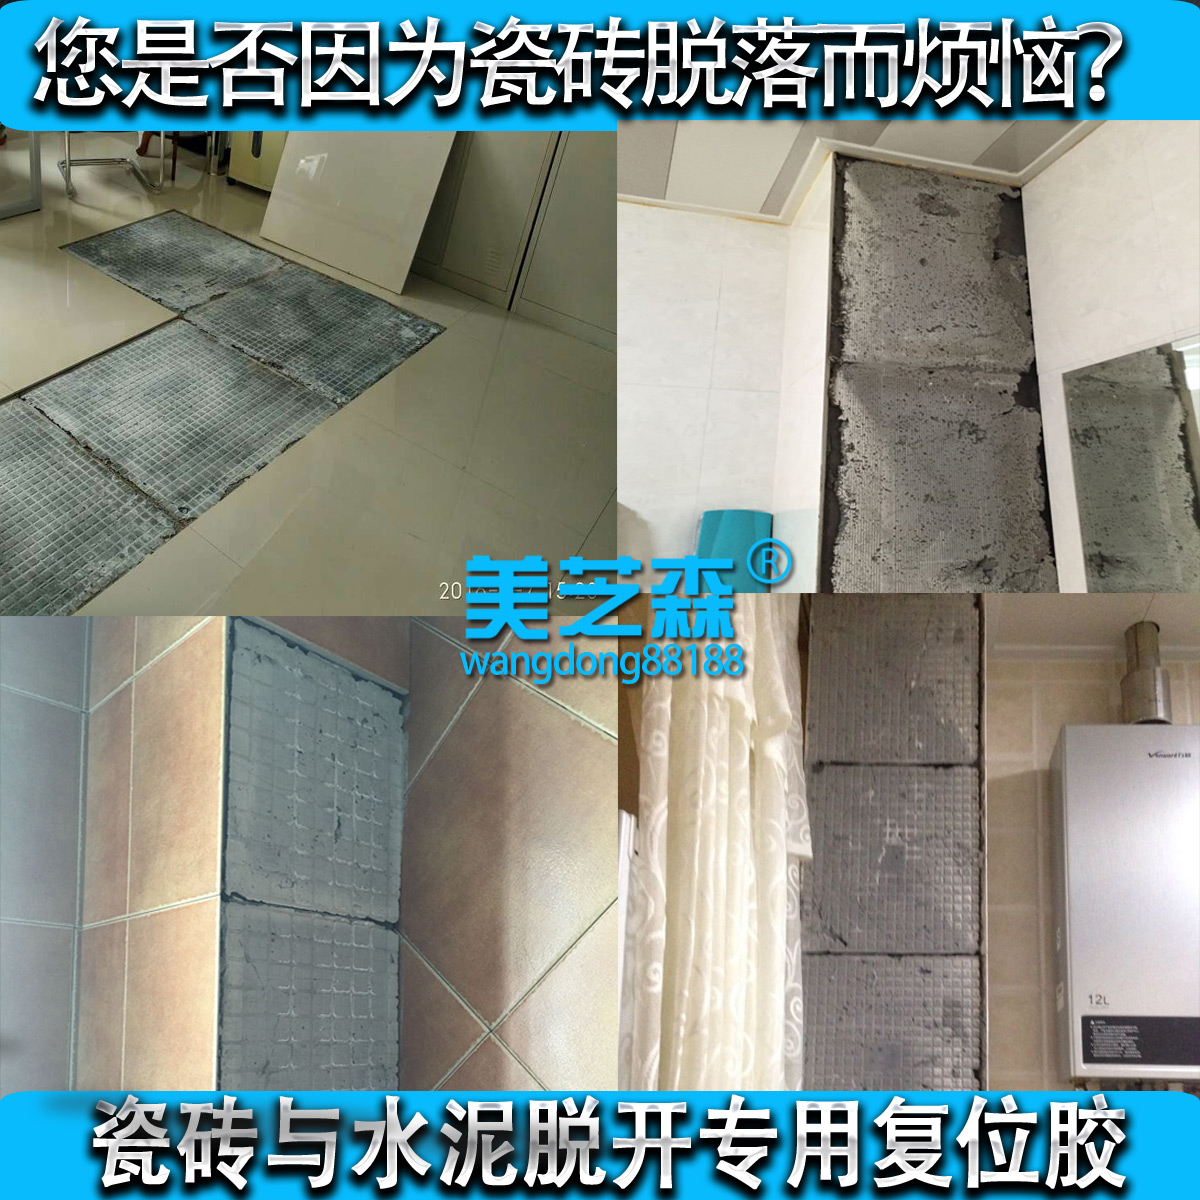 USD Gmcc Johnson Tiles Full Off Plastic Wall Tile Falling Off - Fast drying tile adhesive